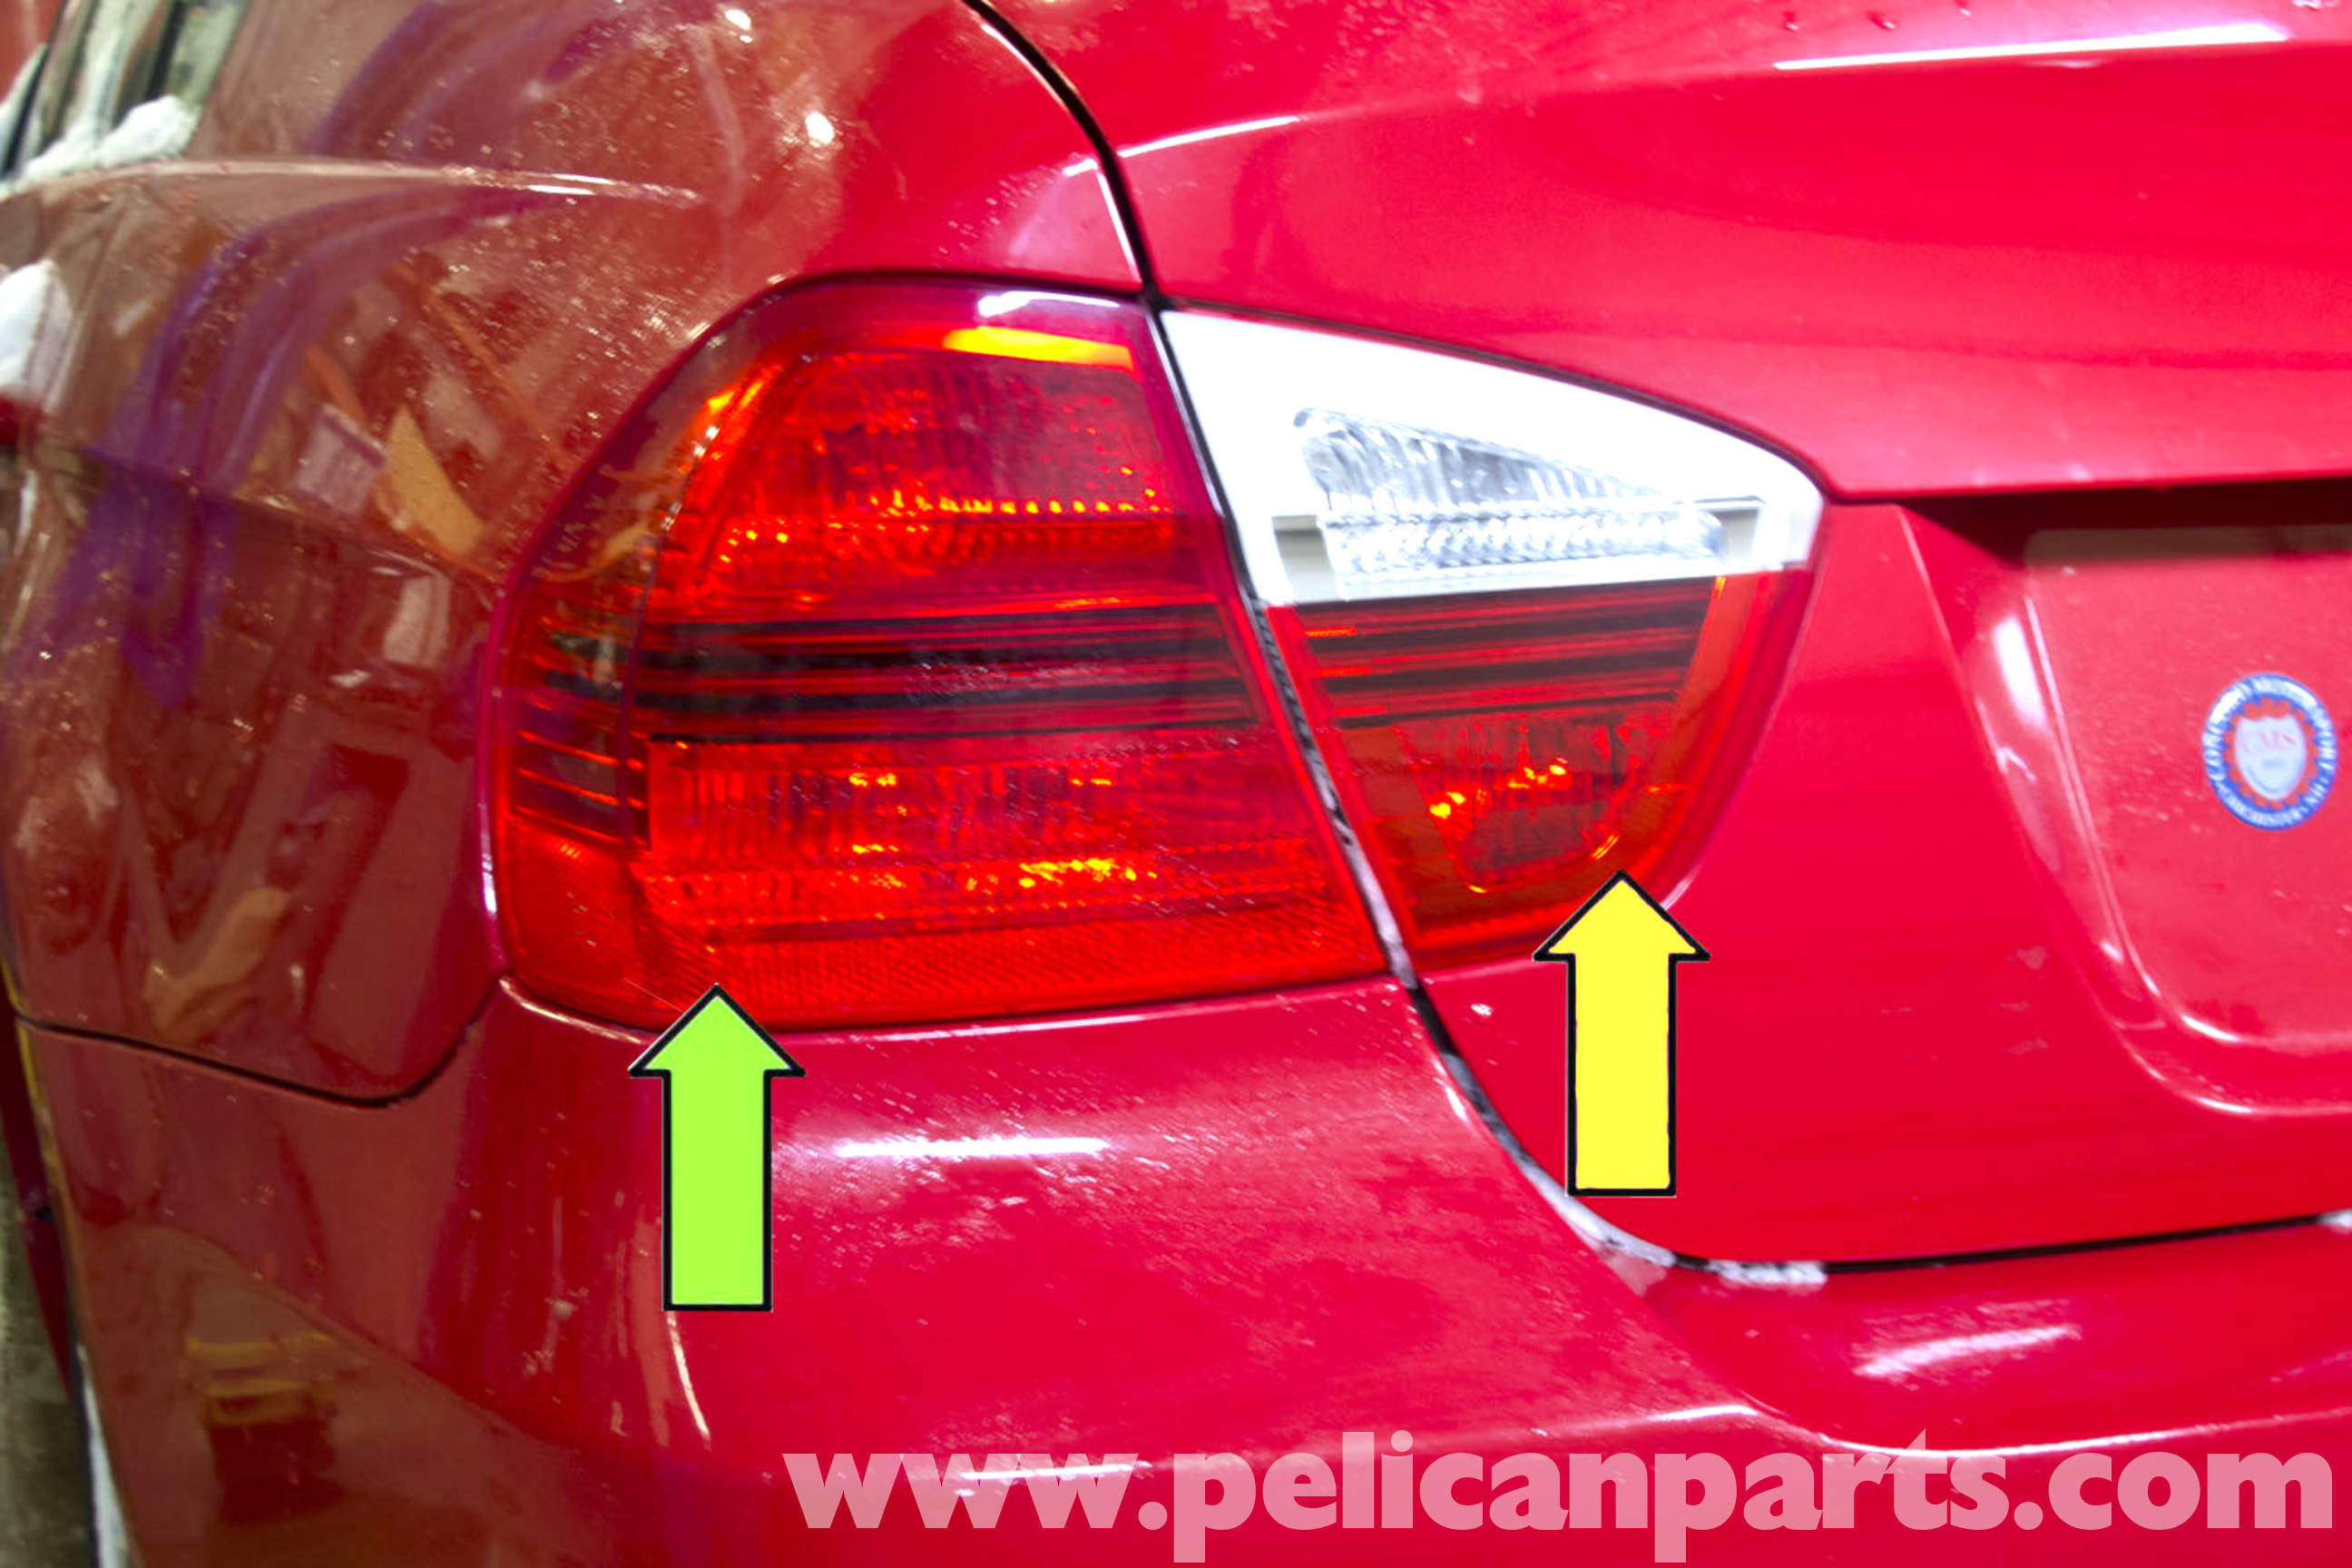 Bmw e90 tail light replacement e91 e92 e93 pelican parts diy large image extra large image aloadofball Choice Image